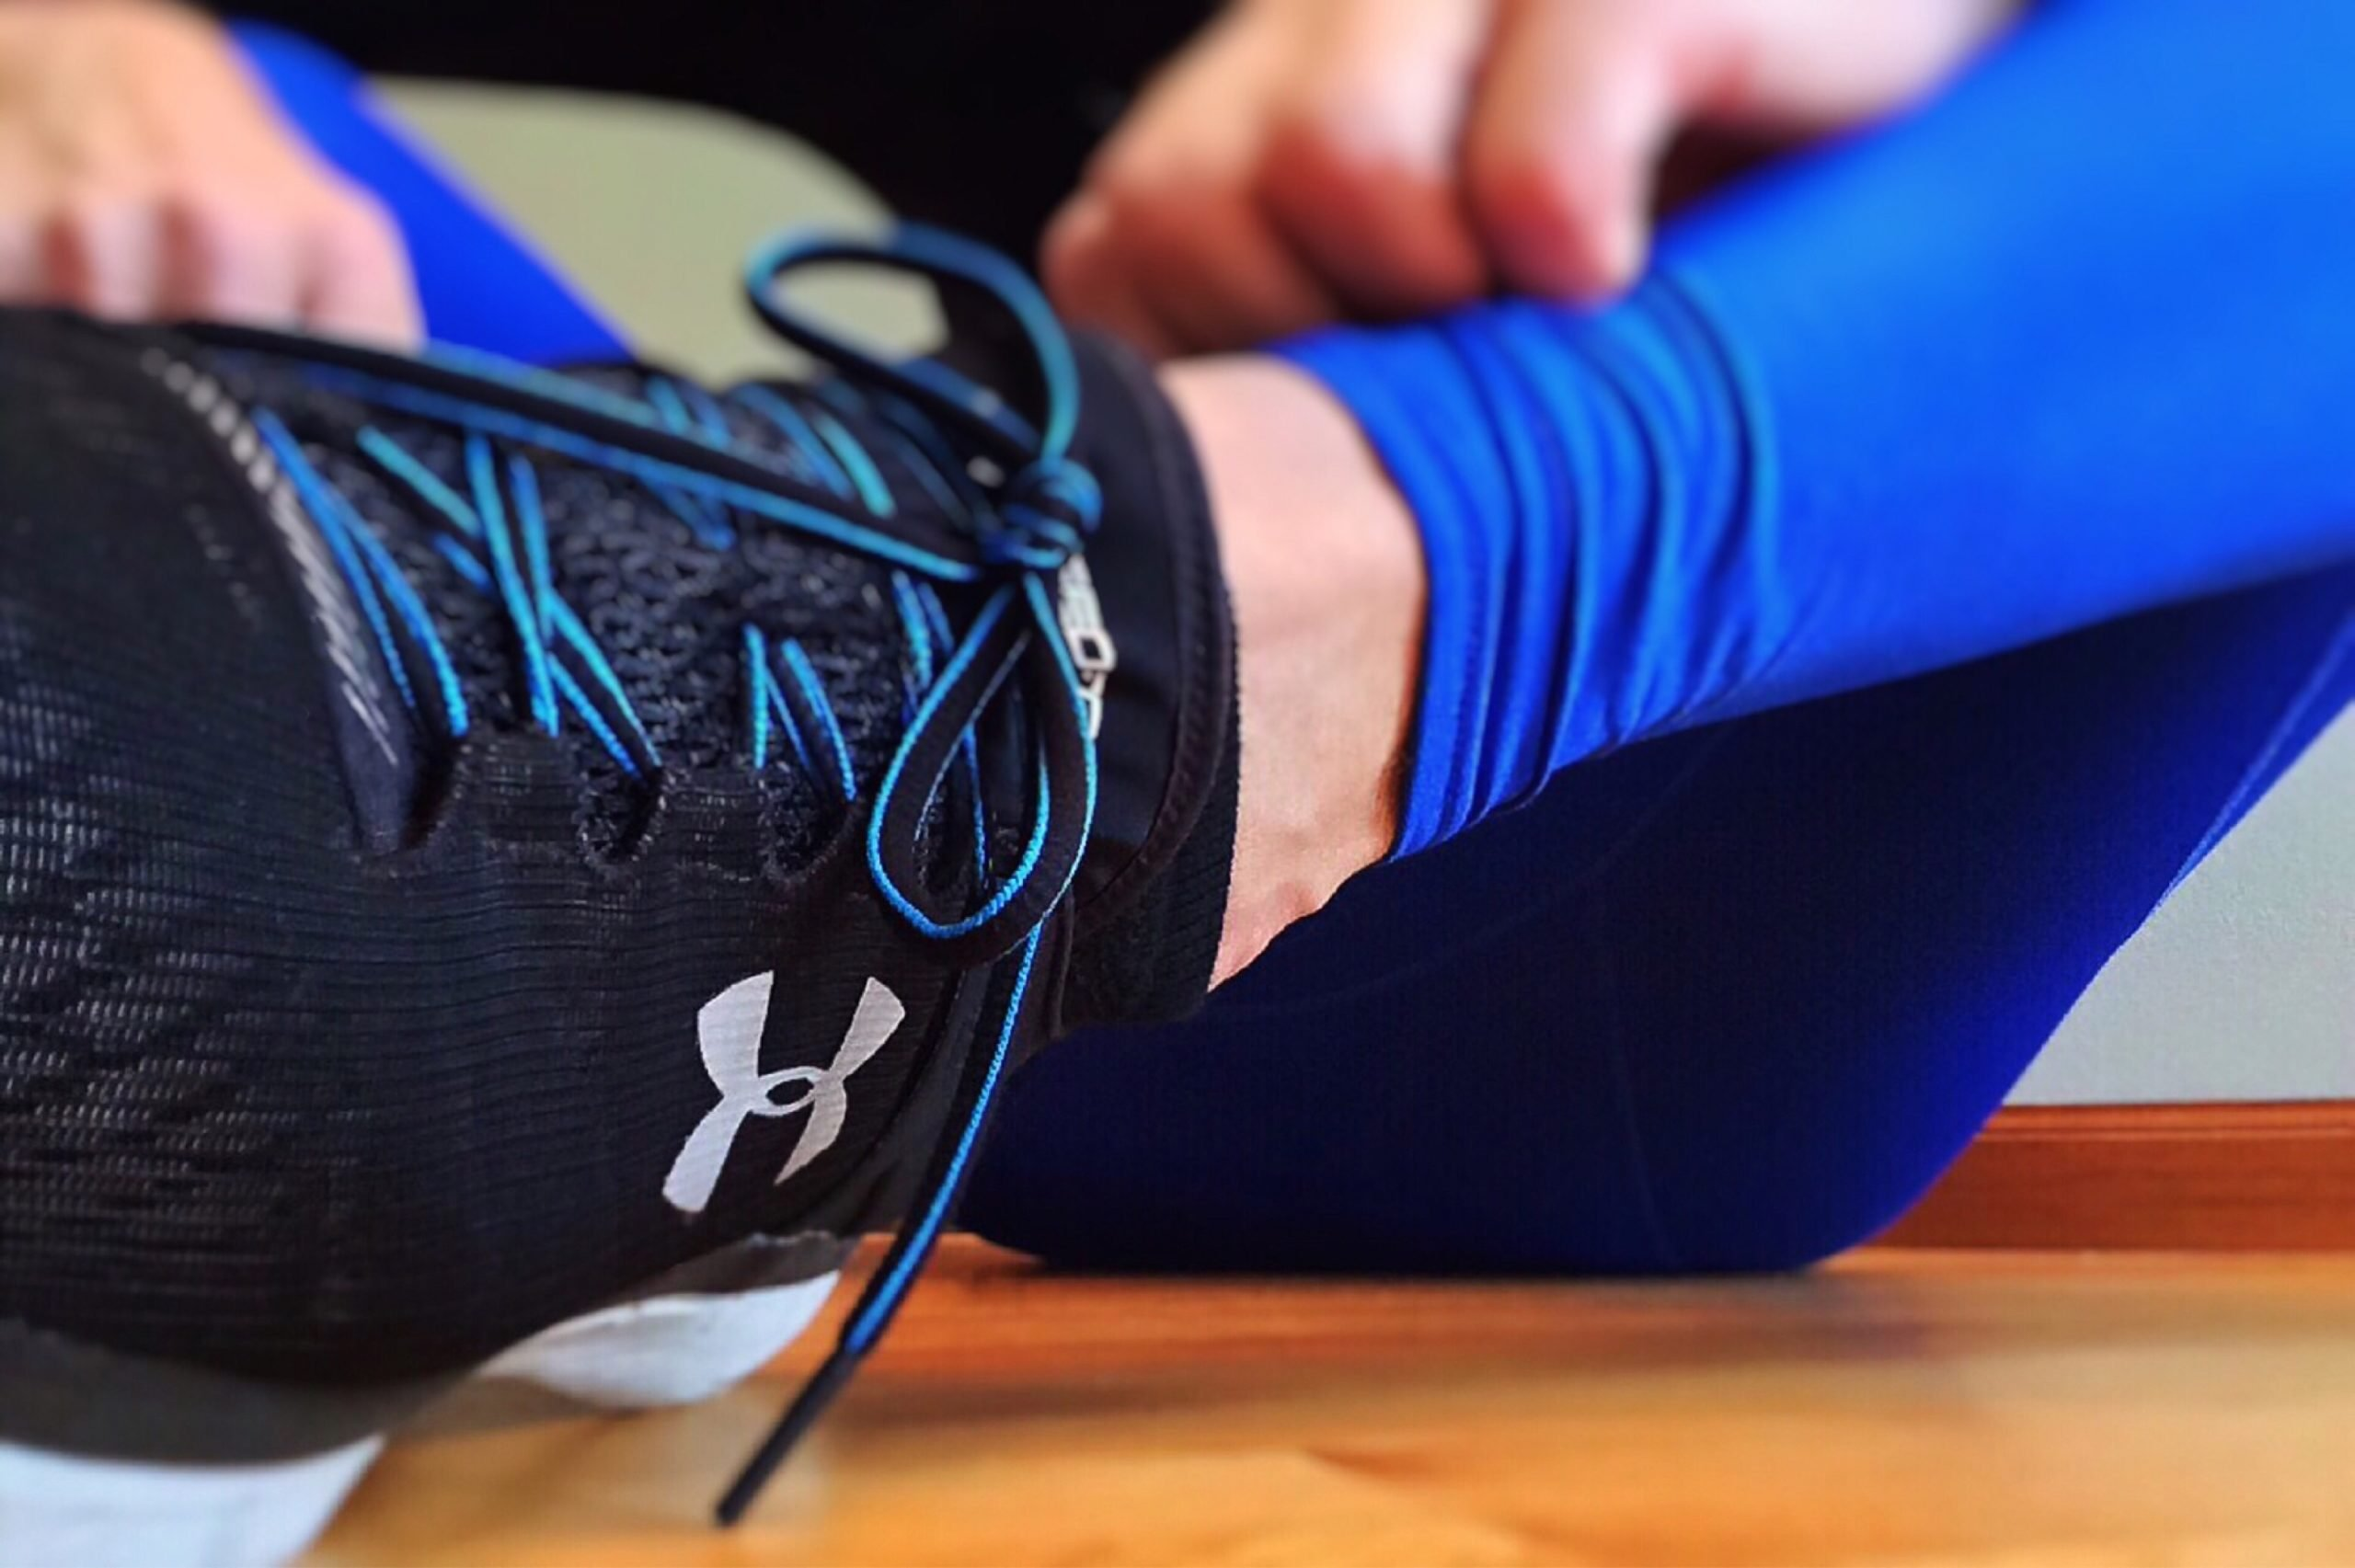 5 Reasons Exercise Is Essential (Besides Looking Fit)